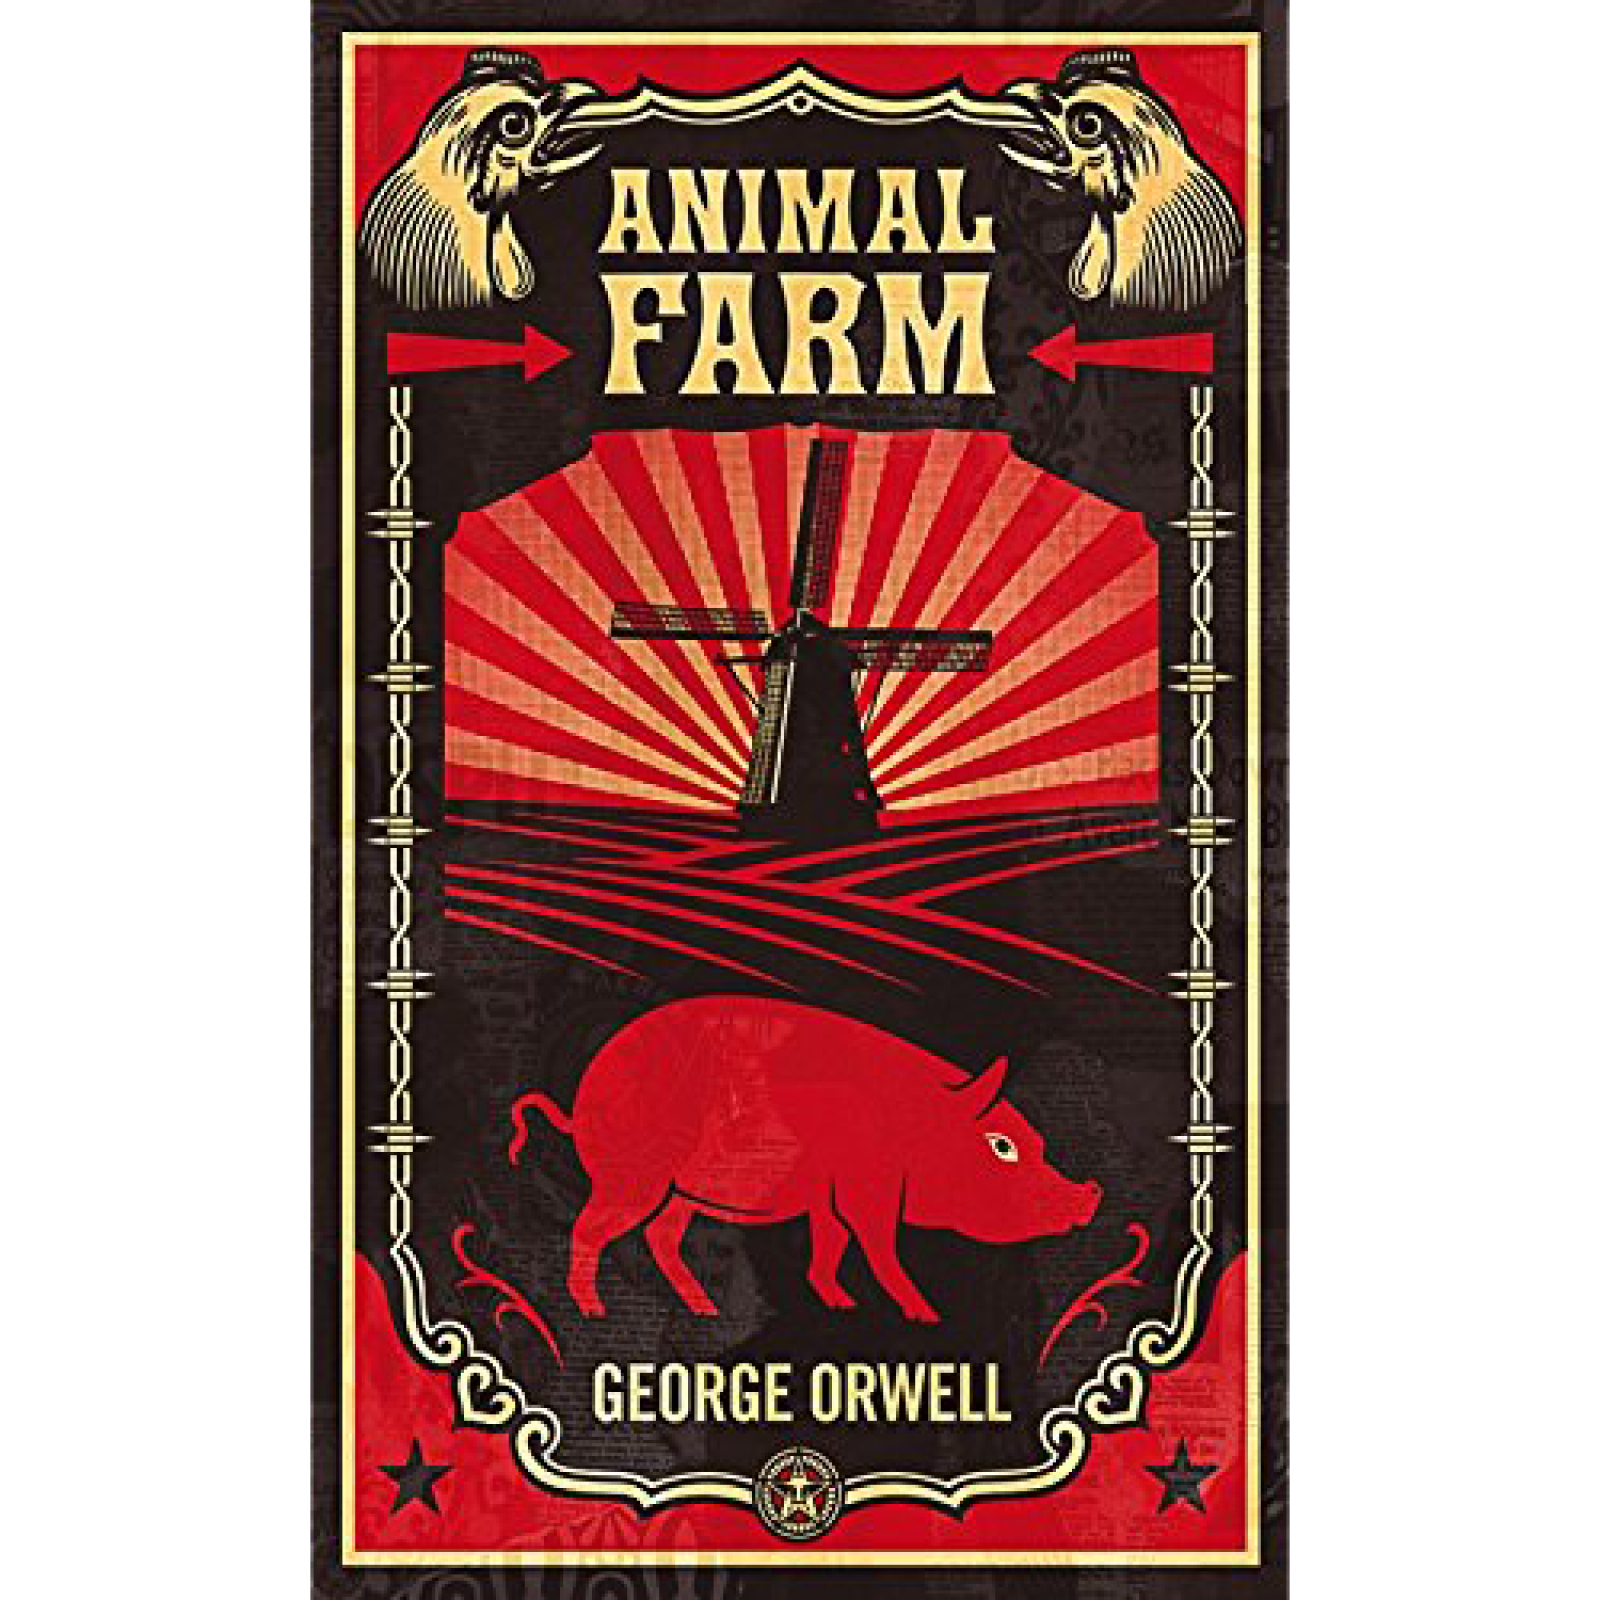 Animal Farm By George Orwell Paperback Book thumbnails